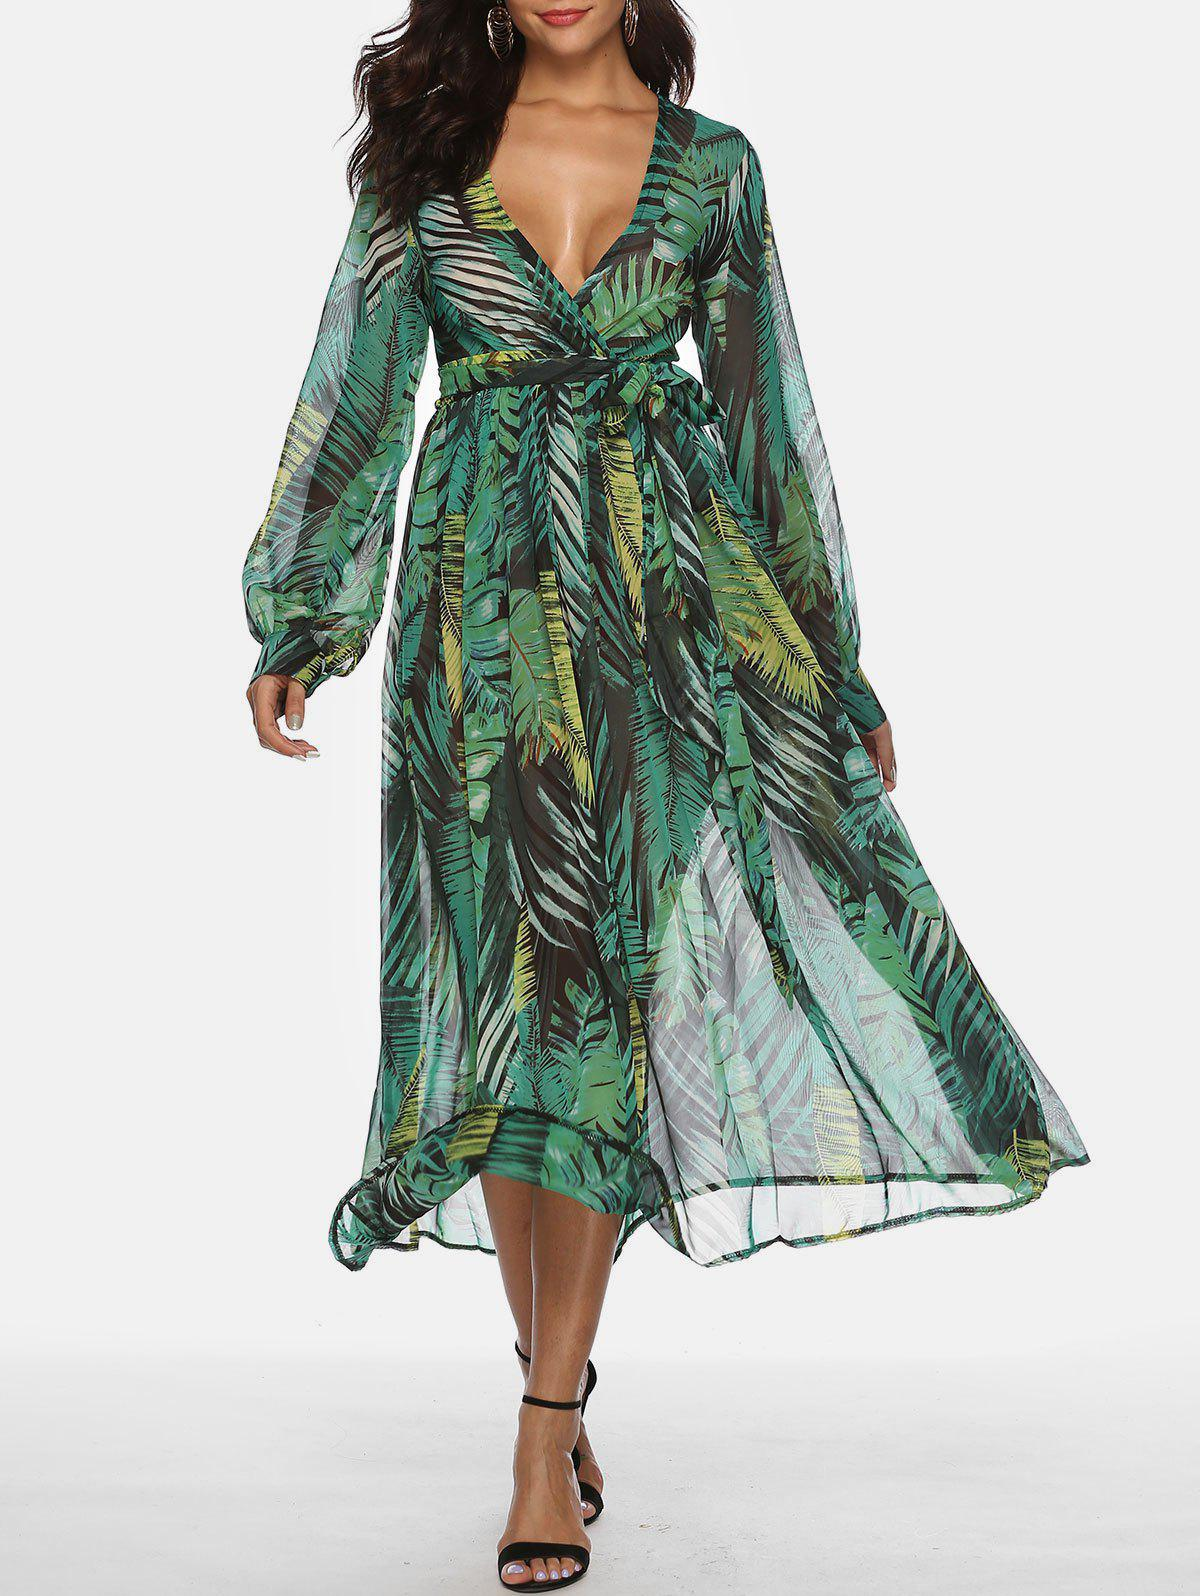 New Bohemian Plunging Neckline Tropical Print Maxi Dress